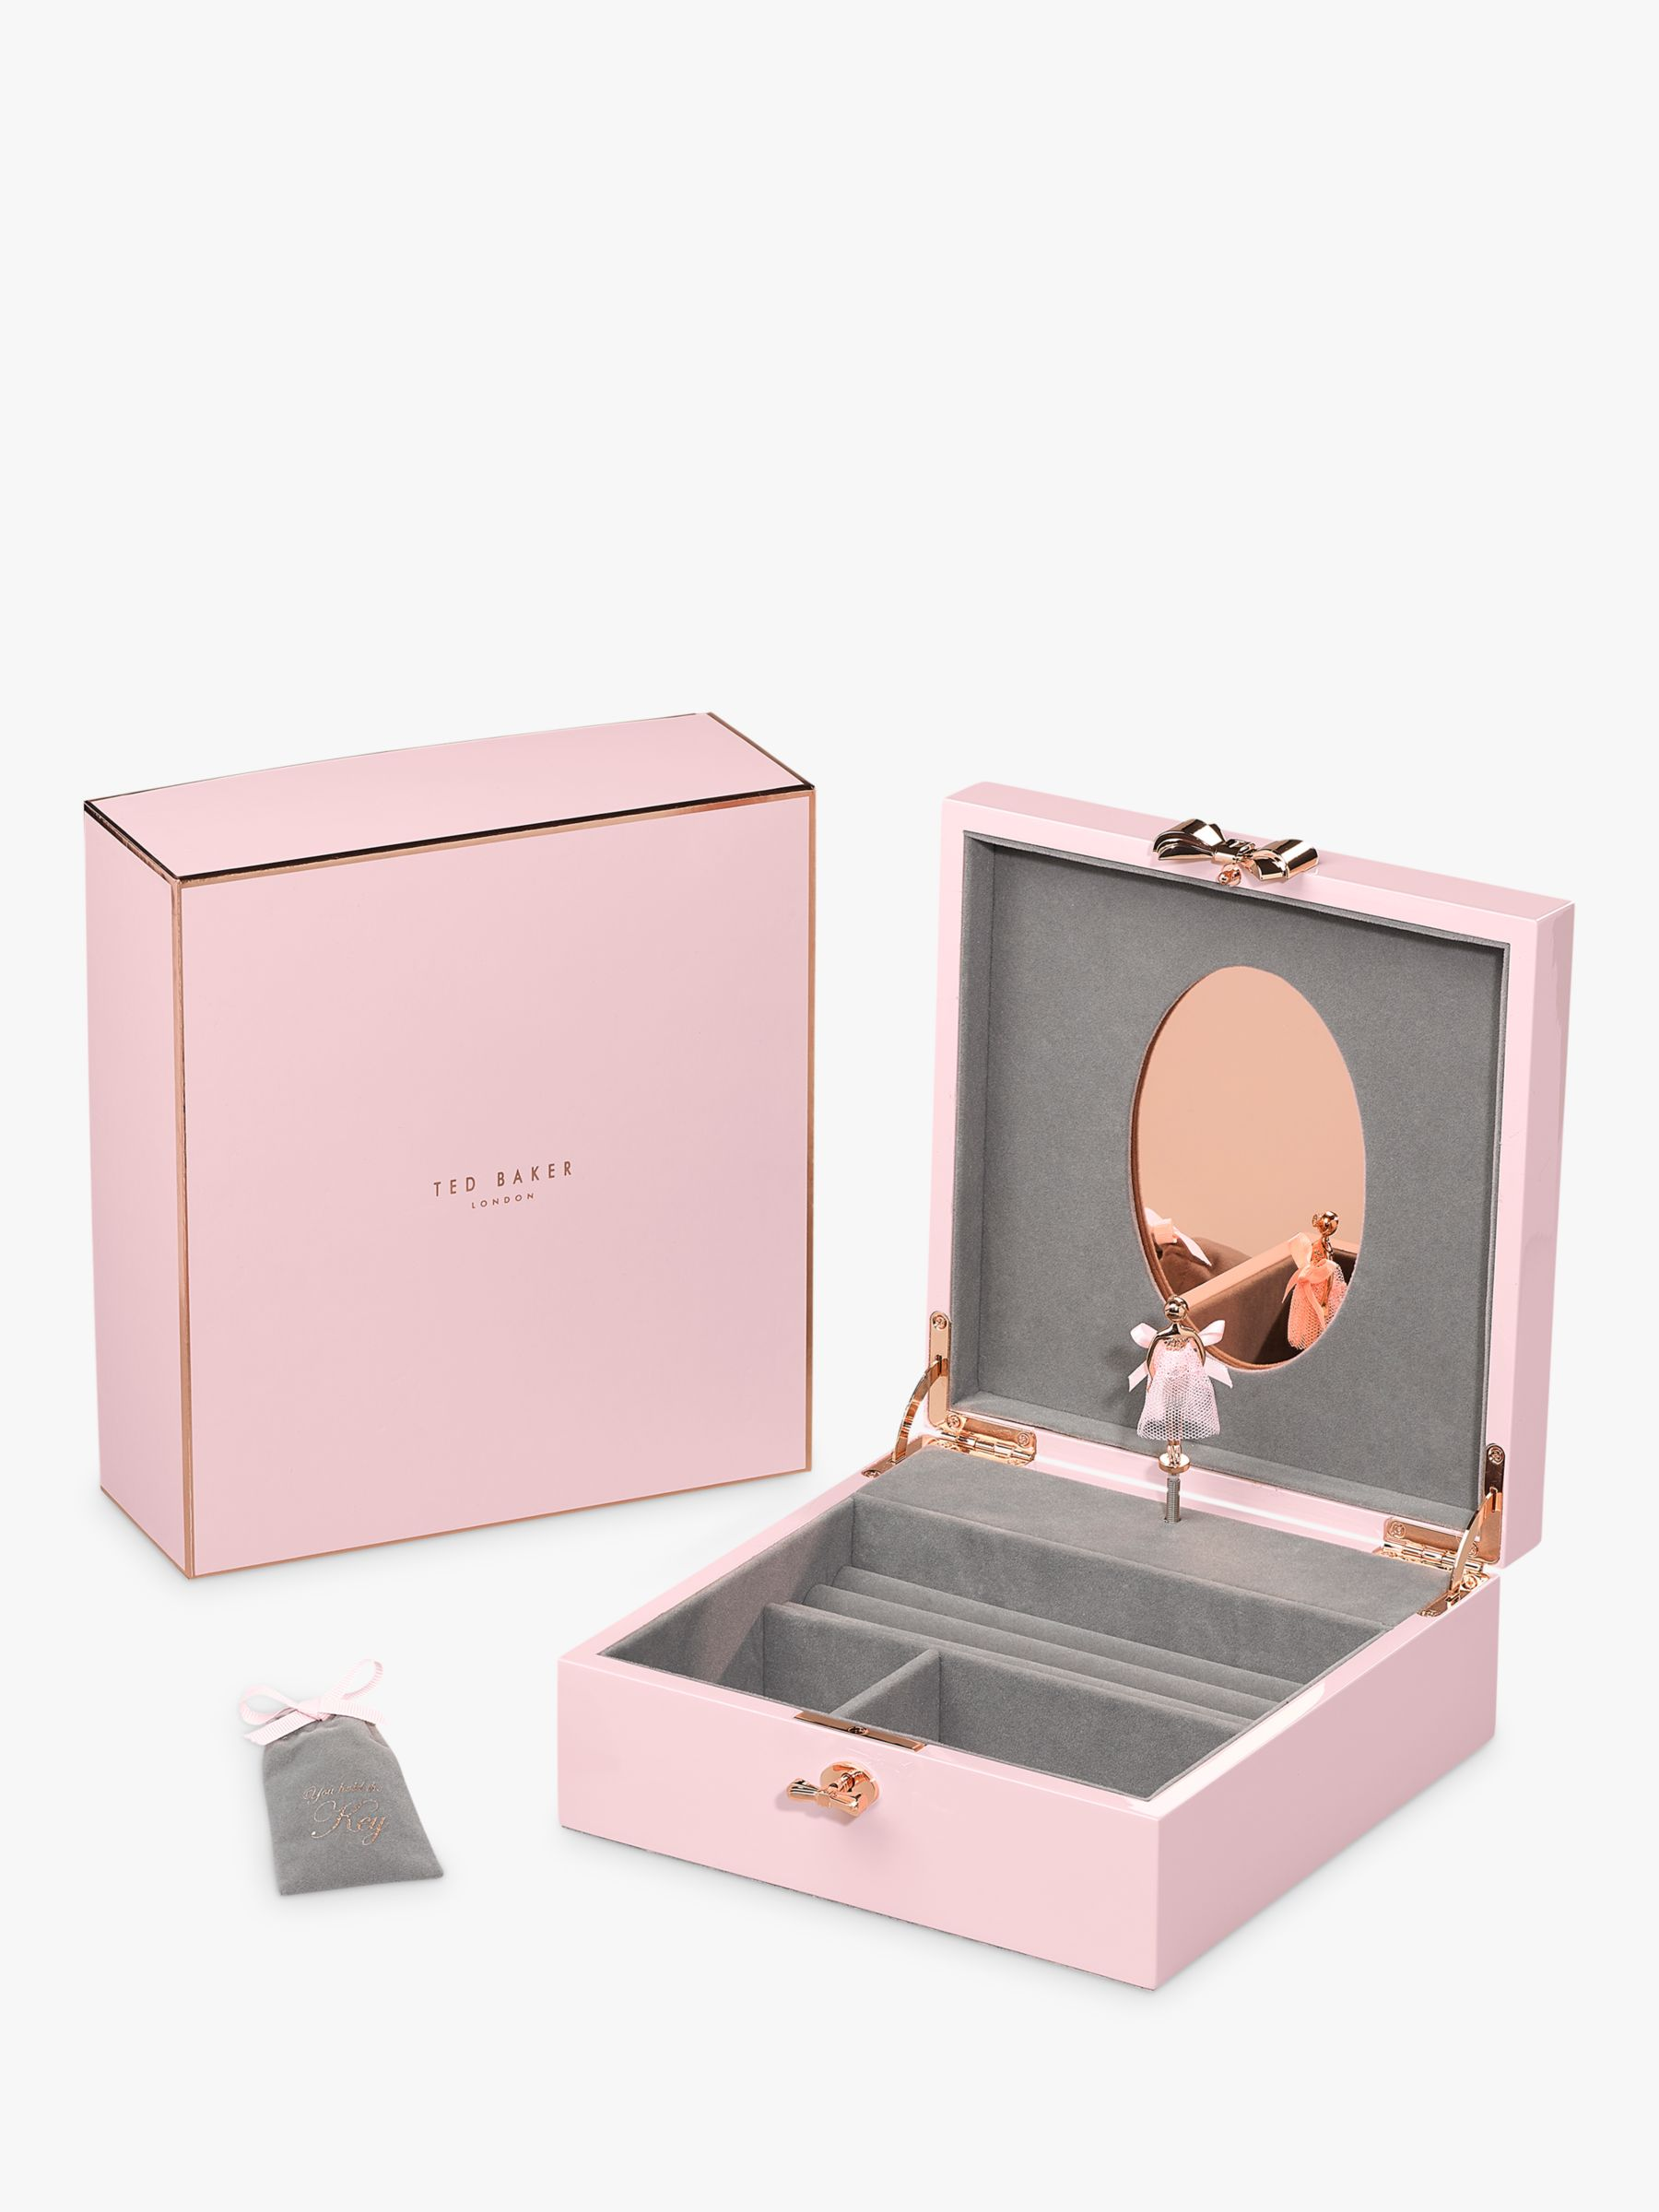 Ted Baker Letyi Large Ballerina Jewellery Box Pink at John Lewis